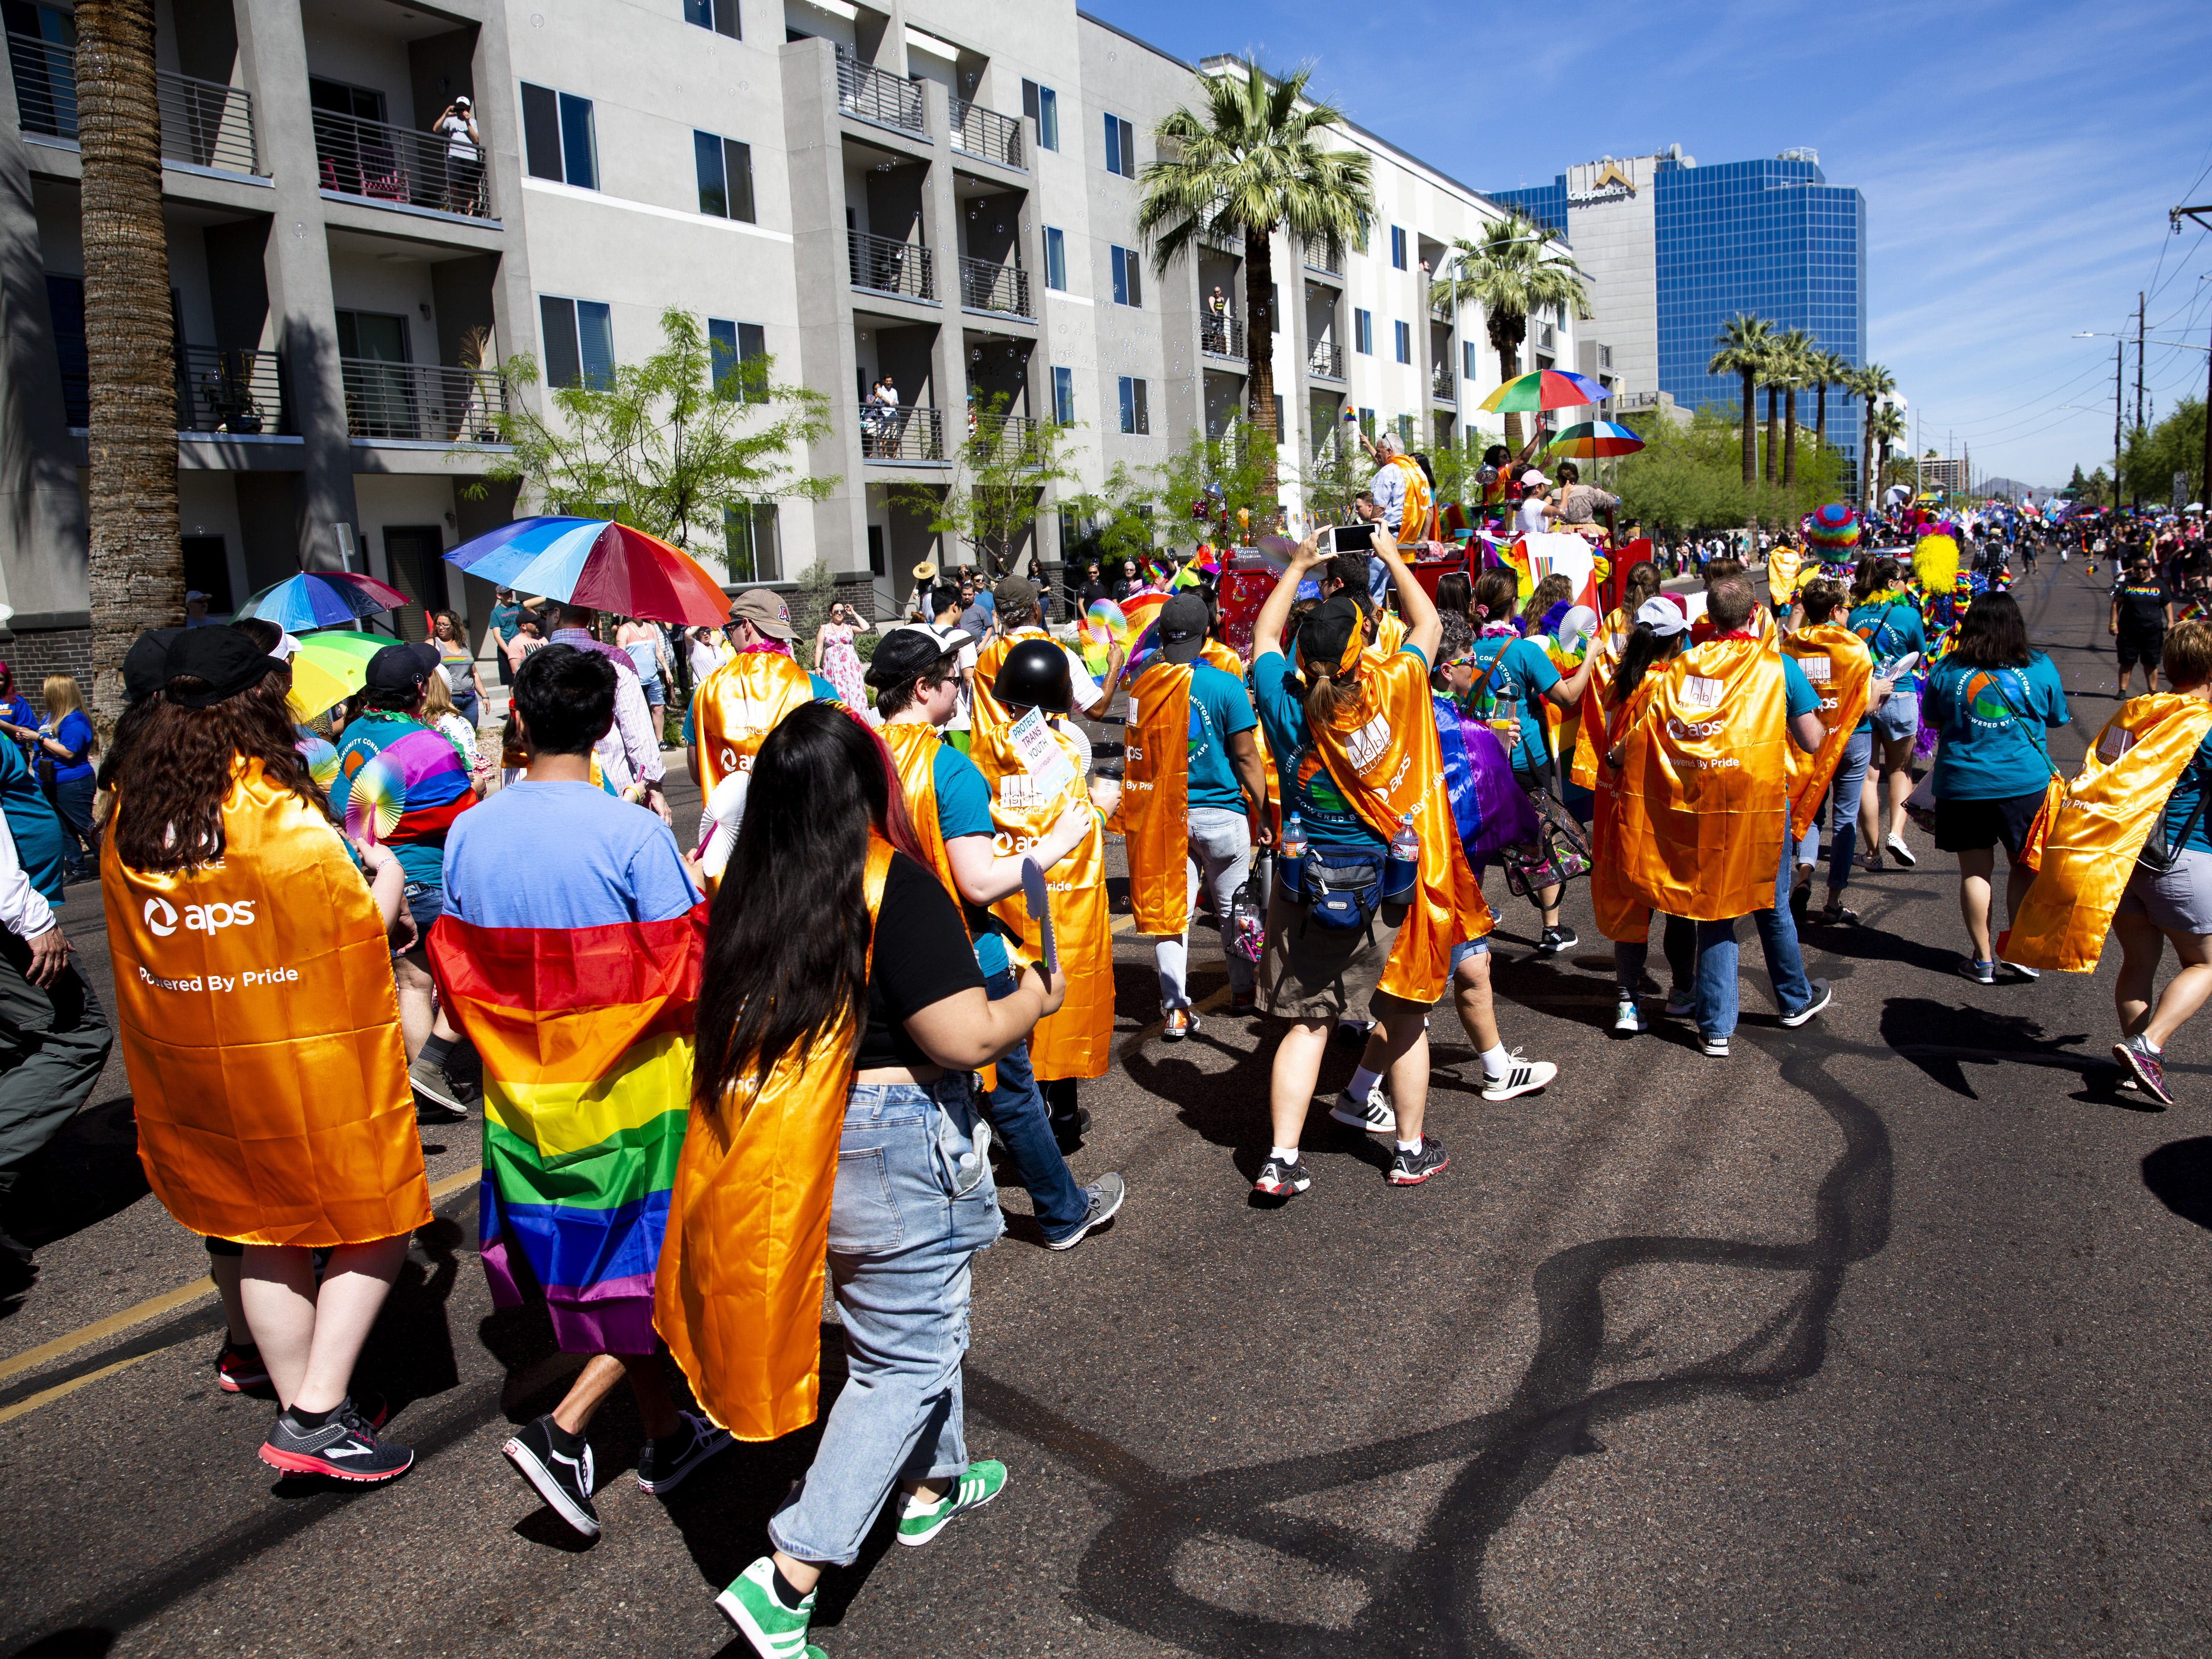 The APS group marches in the Phoenix Pride Parade on April 7, 2019.